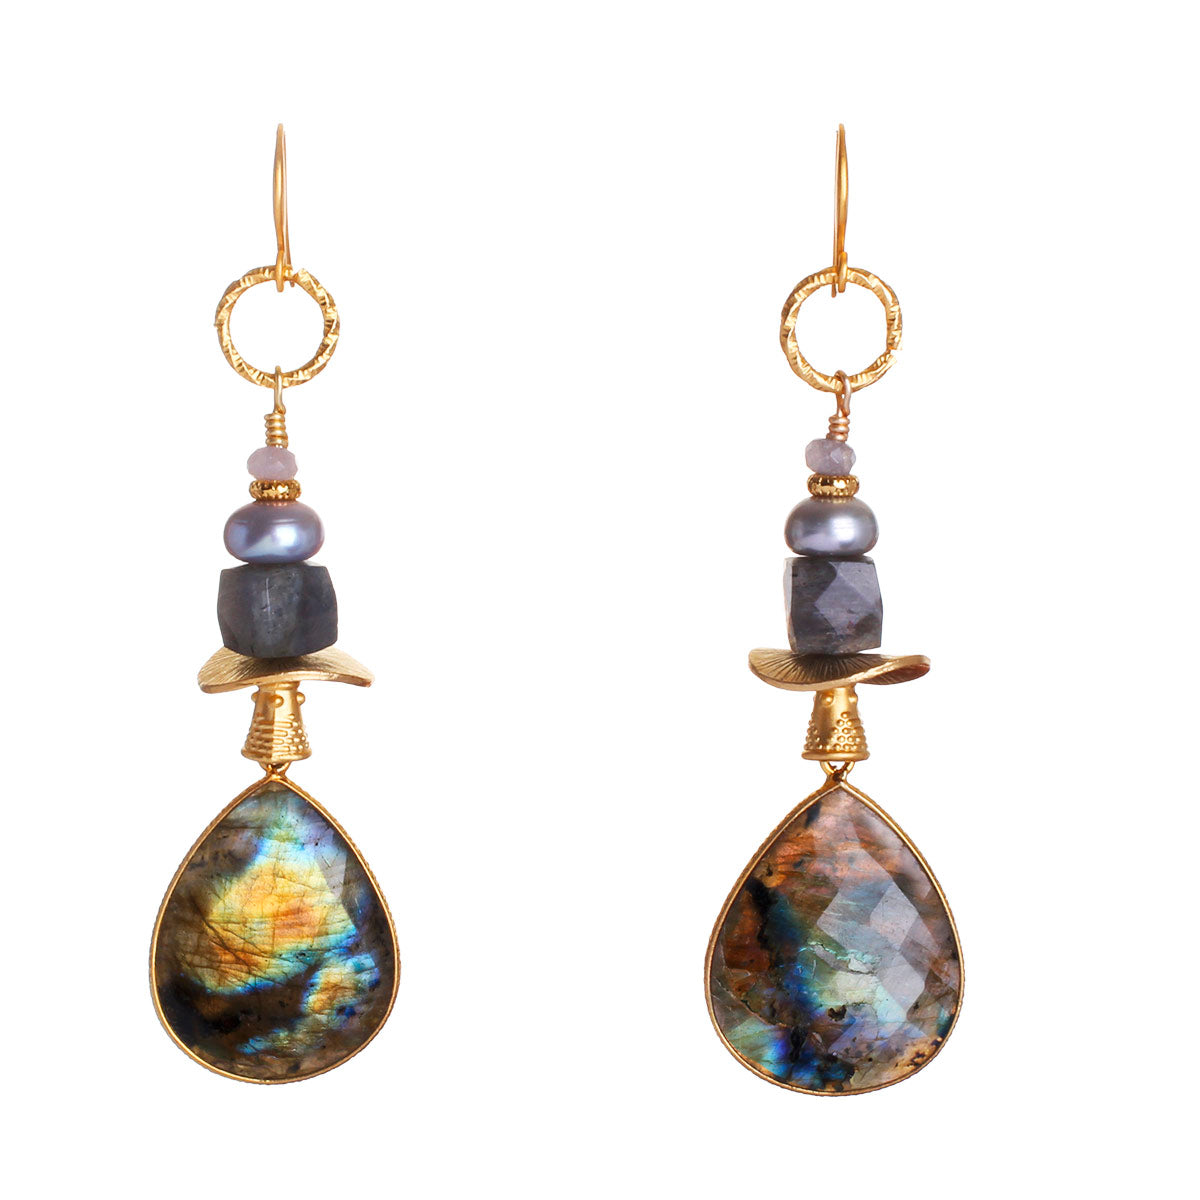 N°534 The Continent of Labradorite Imagination Statement Earrings